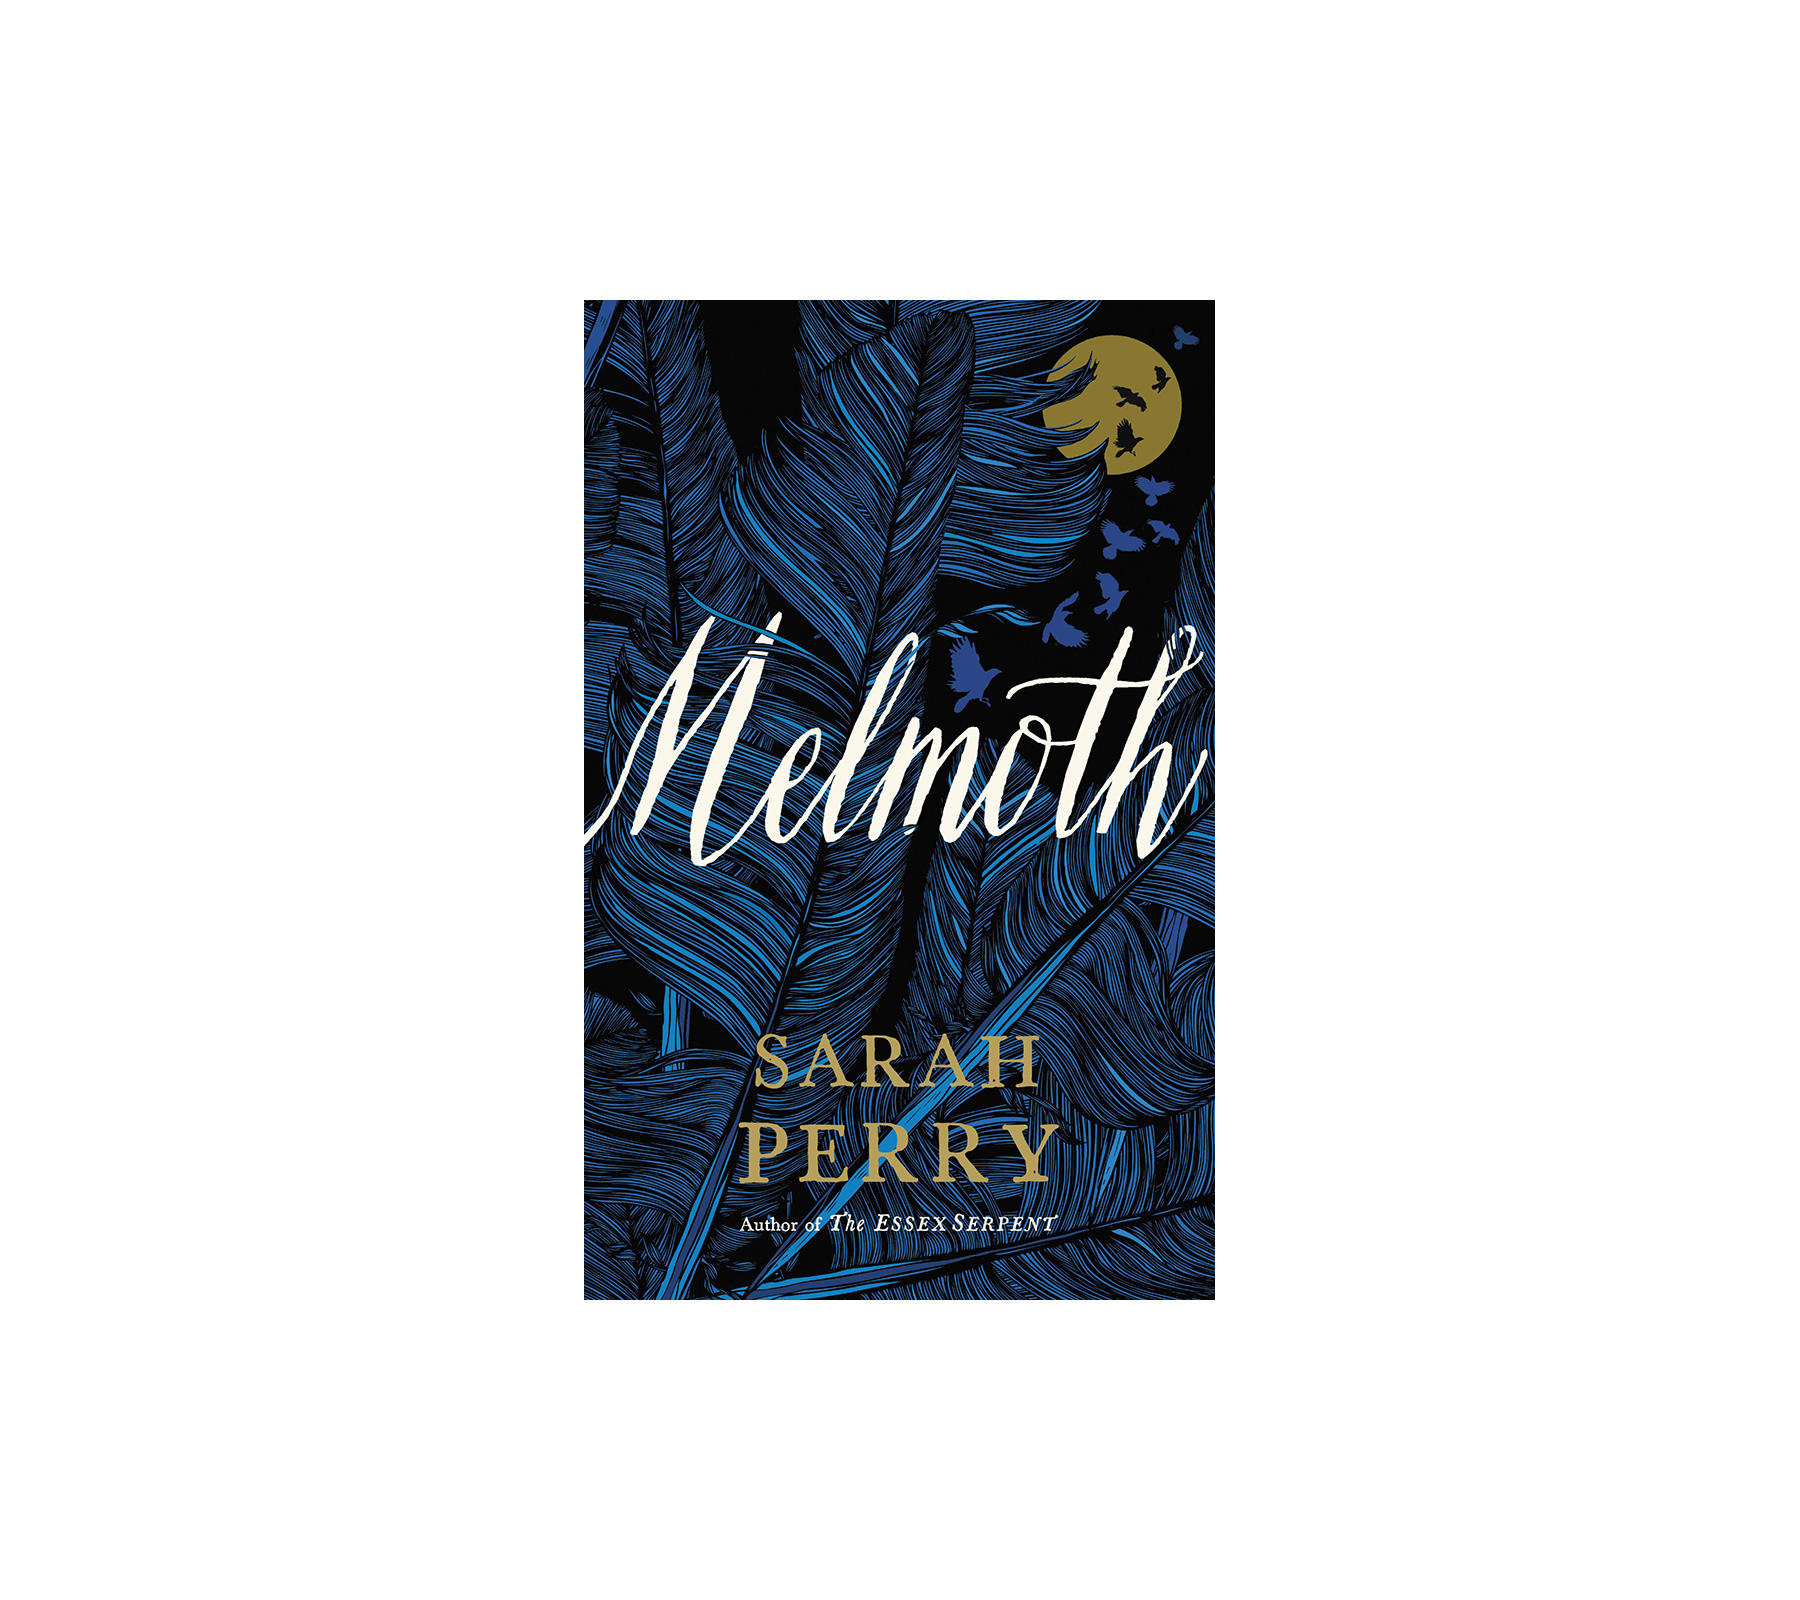 Best Books 2018 Melmoth, by Sarah Perry